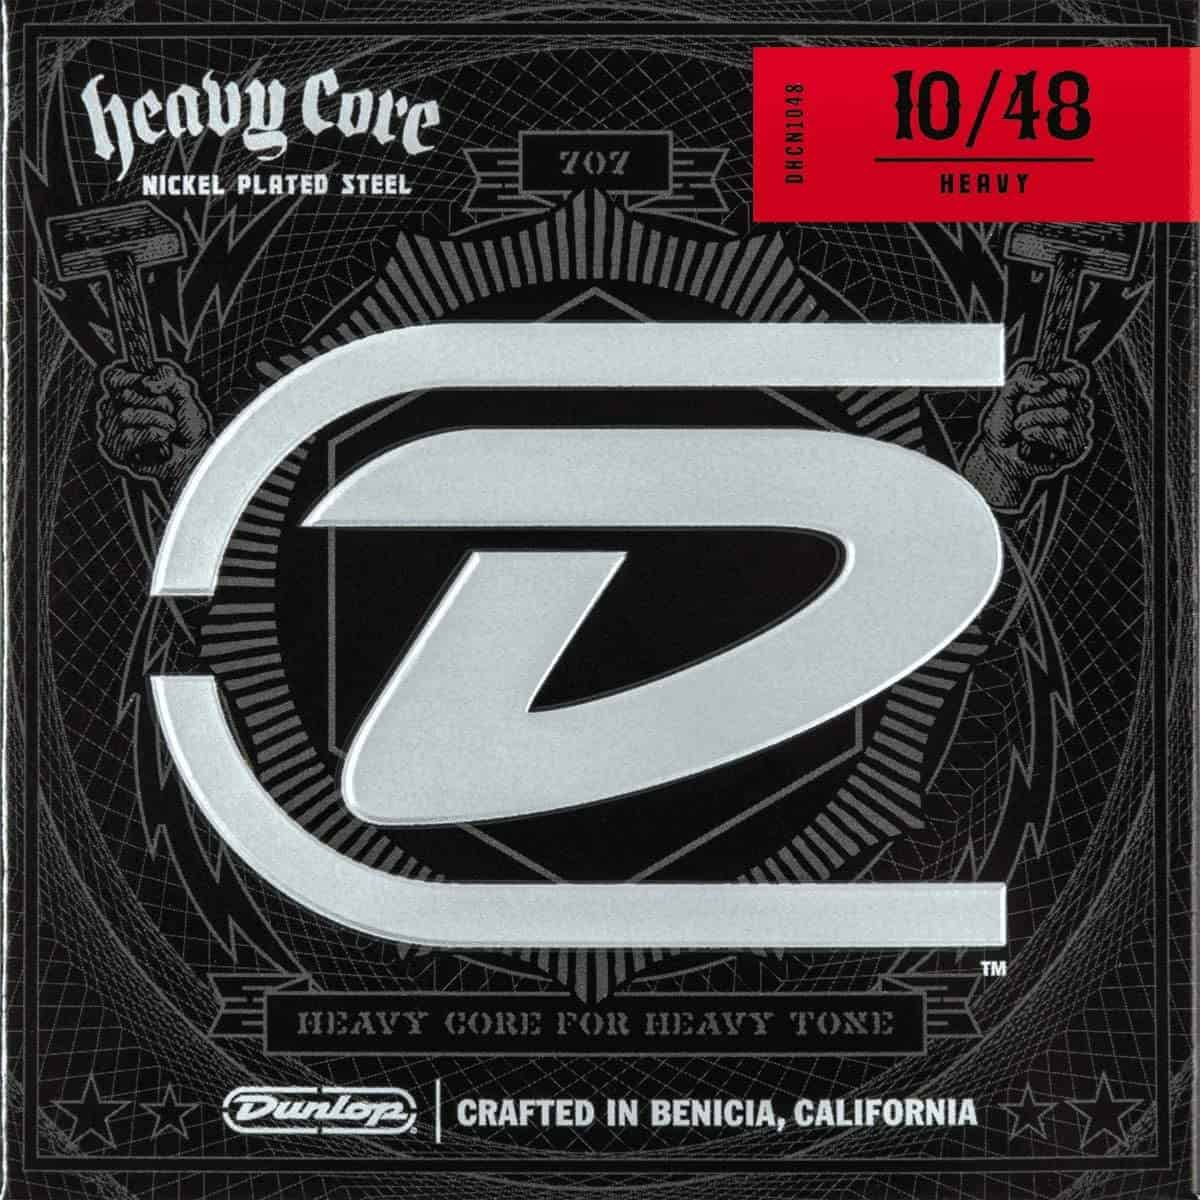 Best strings for downtuning or 7-string: Dunlop Heavy Core